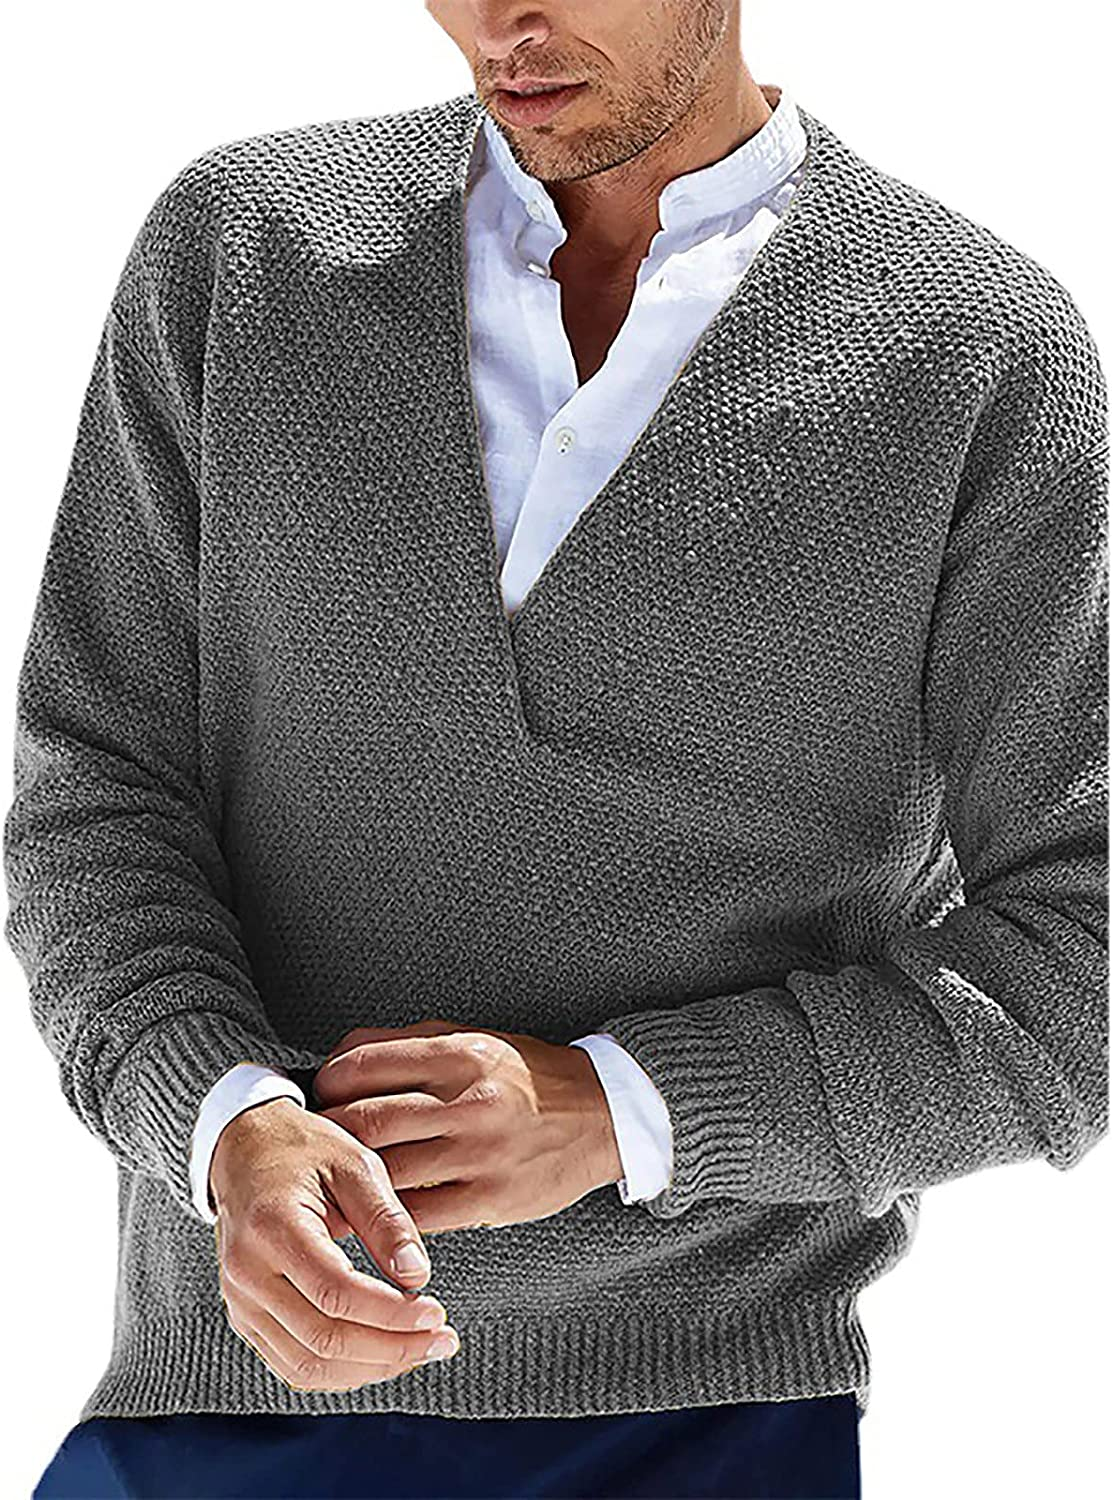 Men's Knitted Cardigan Sweaters V Neck Solid Color Long Sleeve Knitwear with Pockets Pullover Sweater for Men